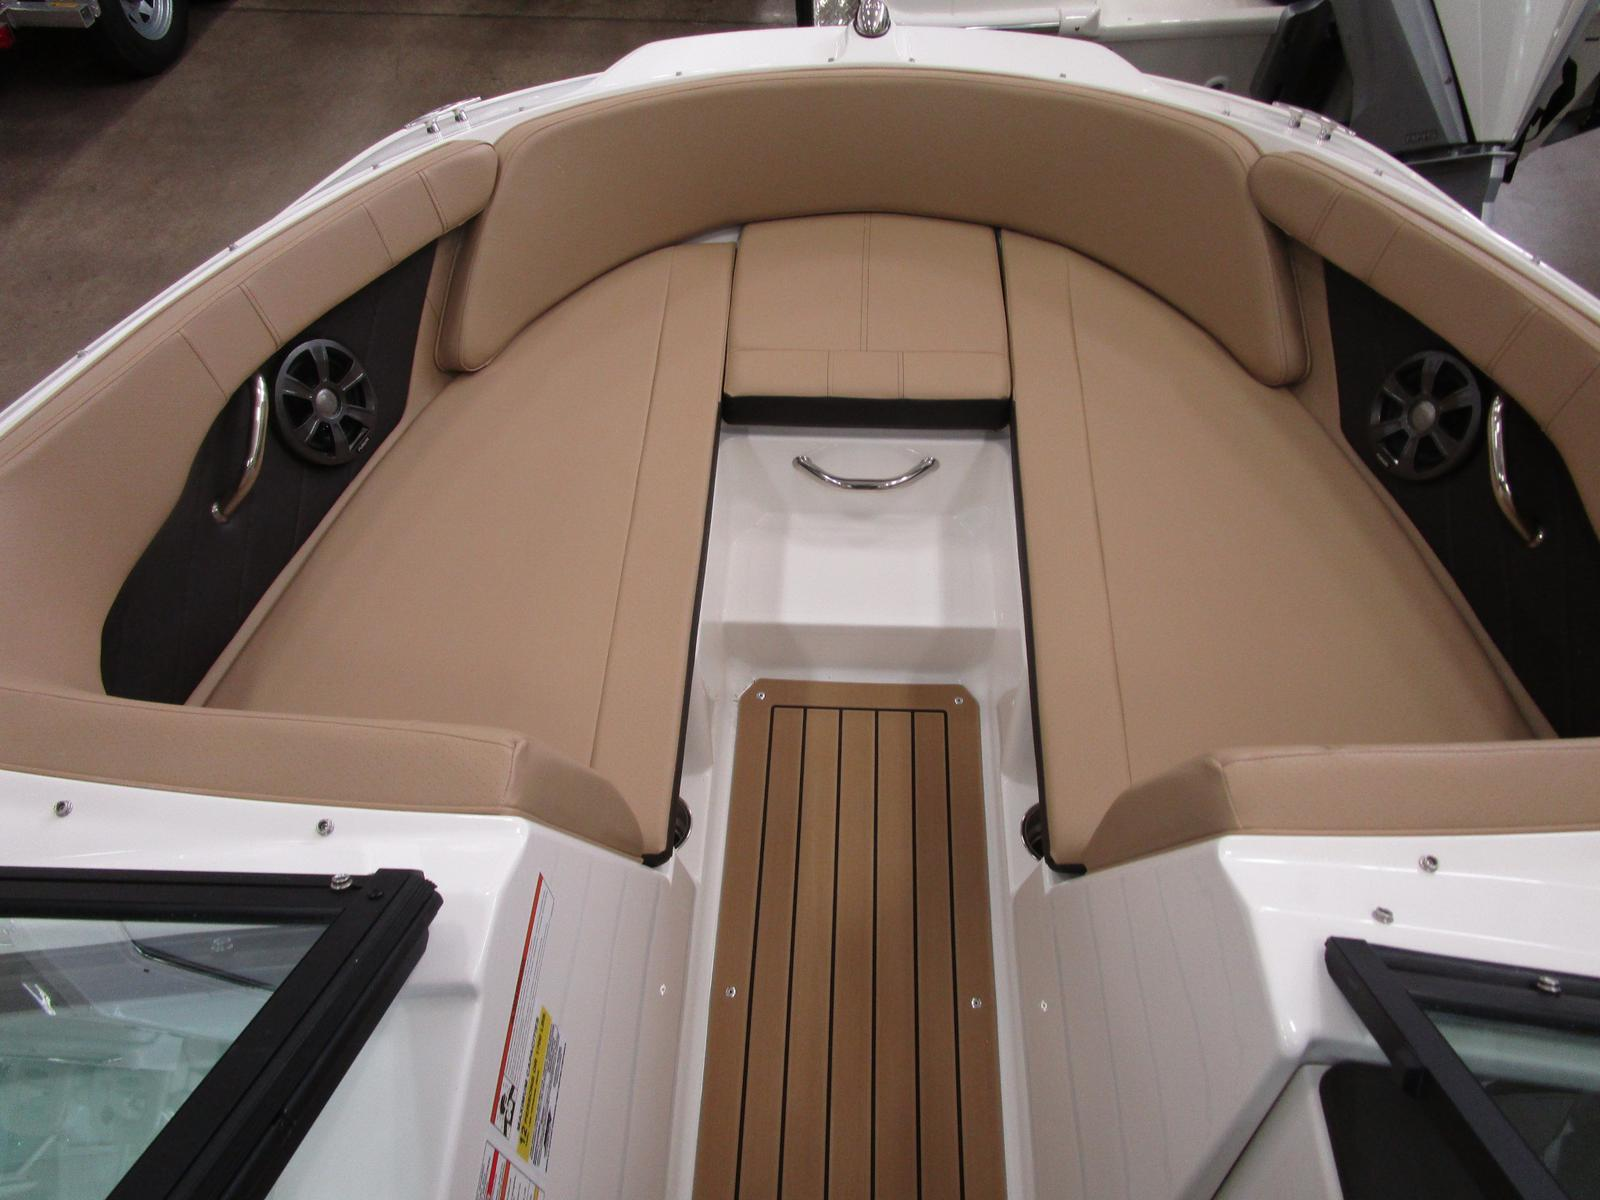 2019 Sea Ray boat for sale, model of the boat is SPX 210 & Image # 6 of 7